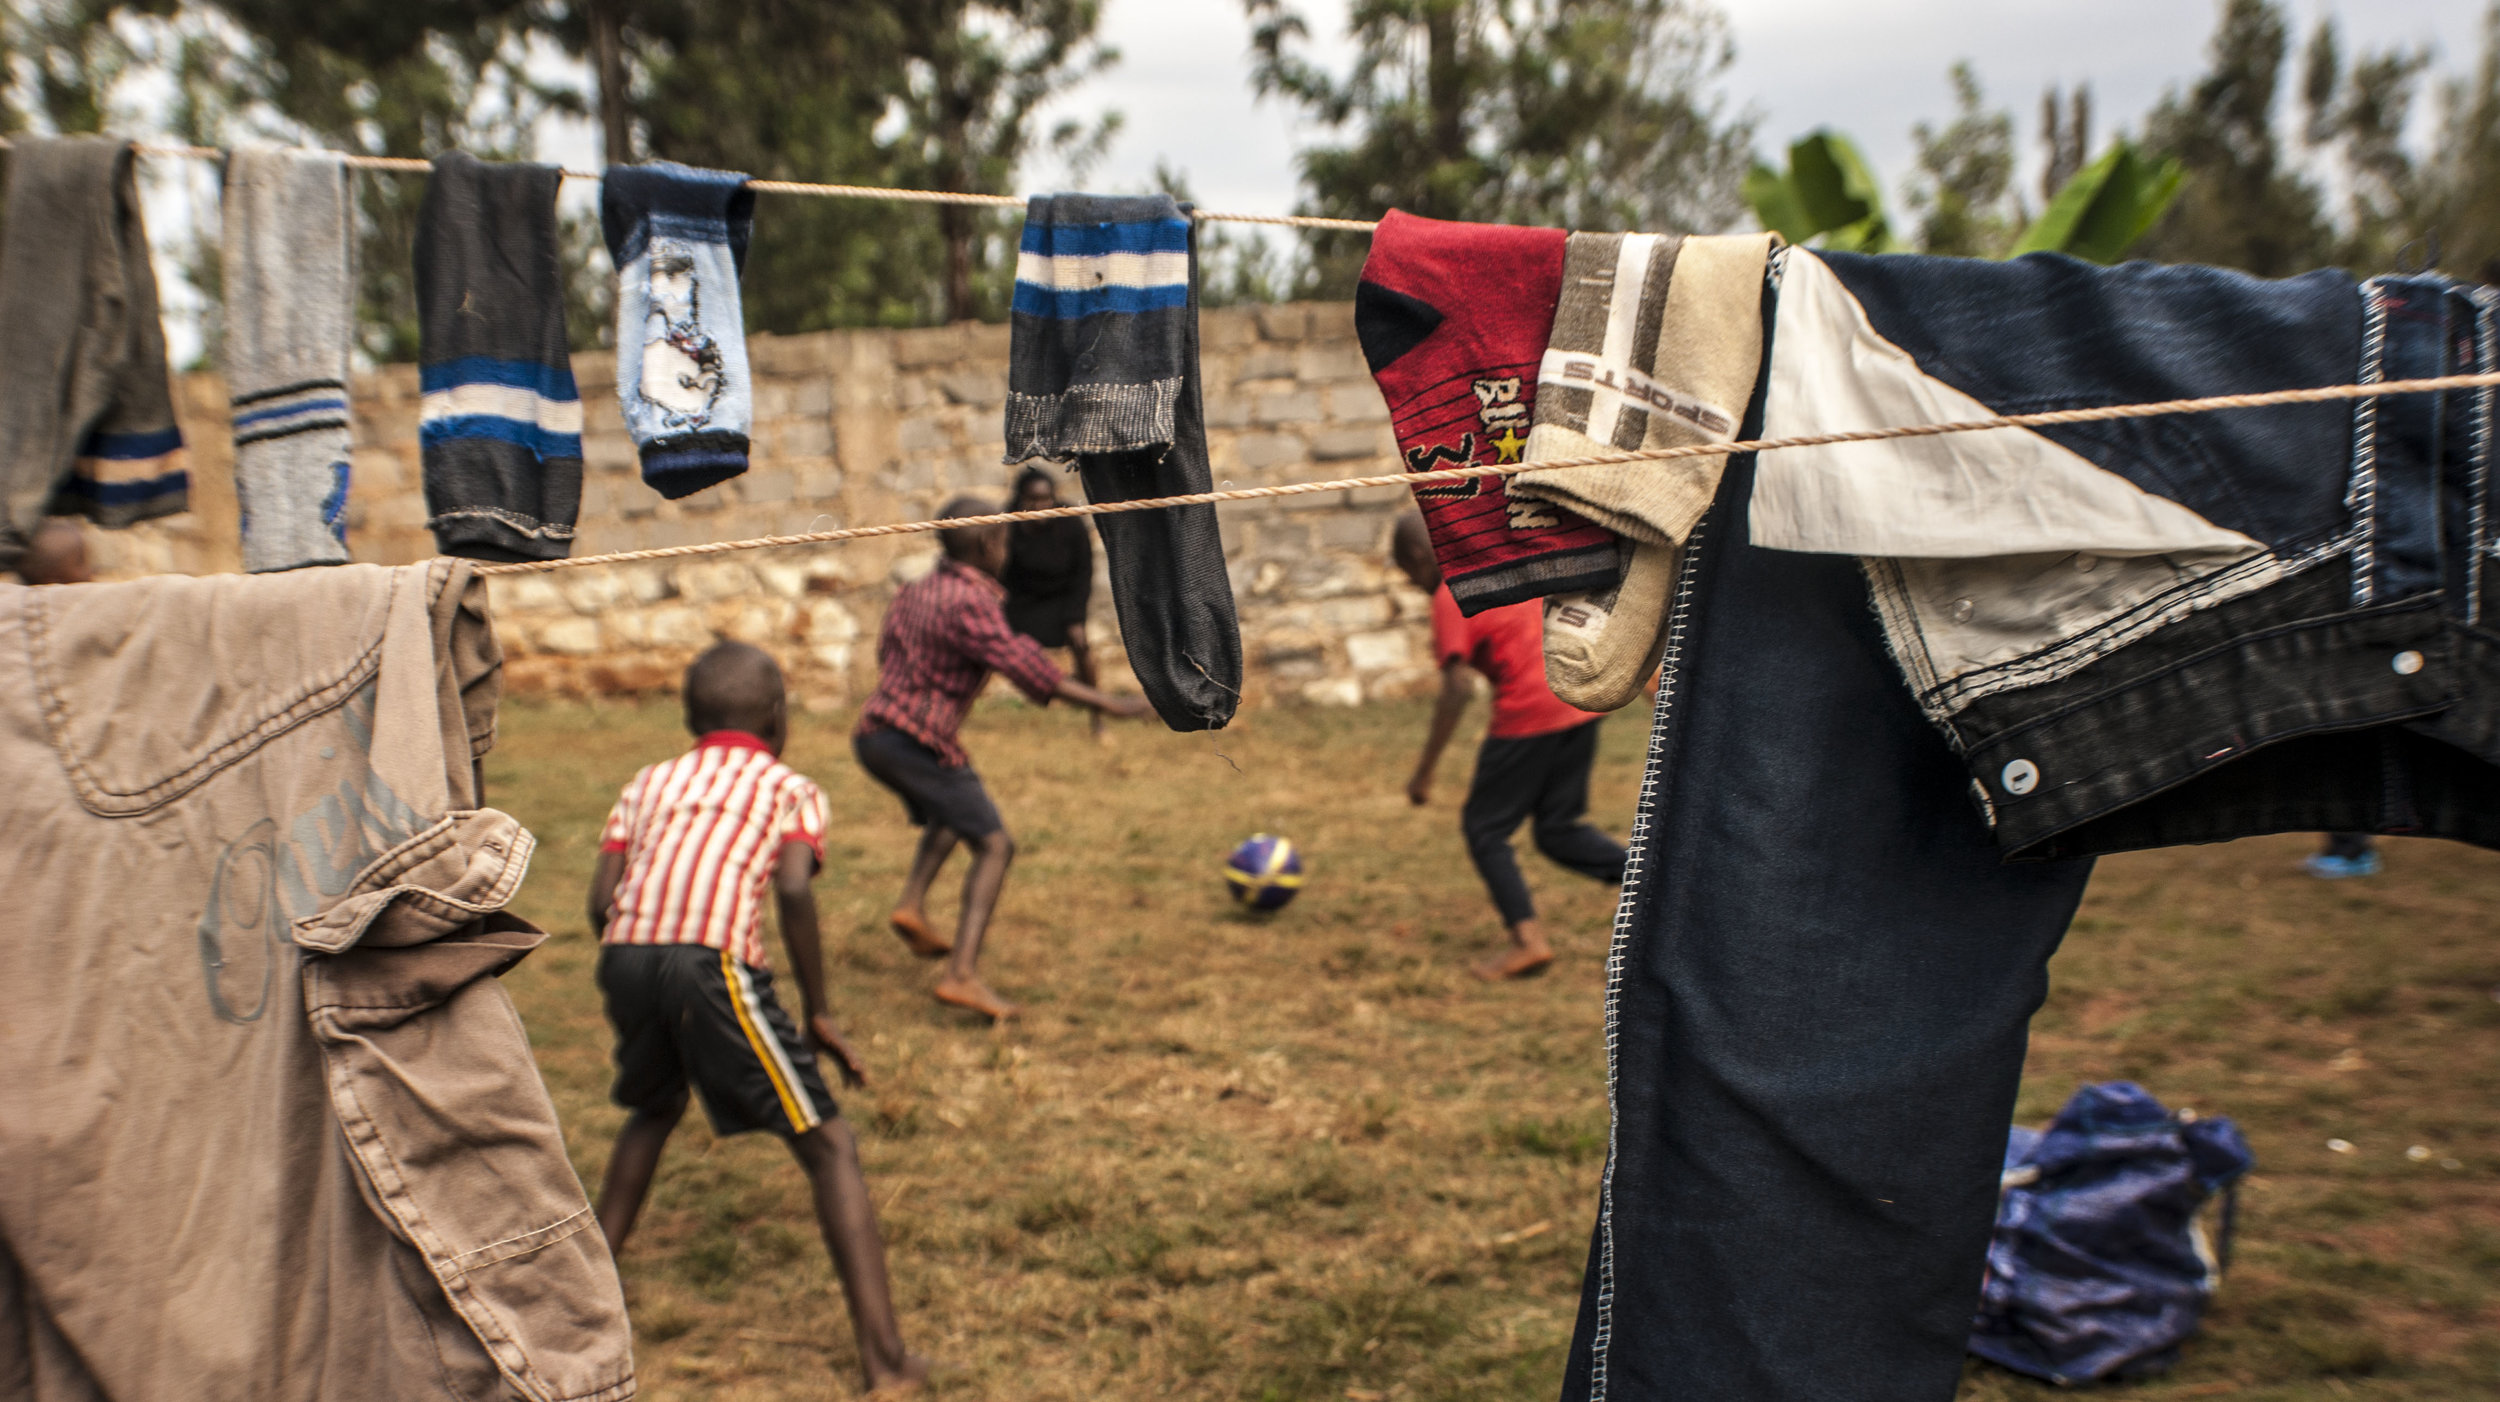 Cultural Sensitivity - The Addis Clinic relies on the cultural awareness and language skills of local frontline health workers who provide care for patients in their own communities.